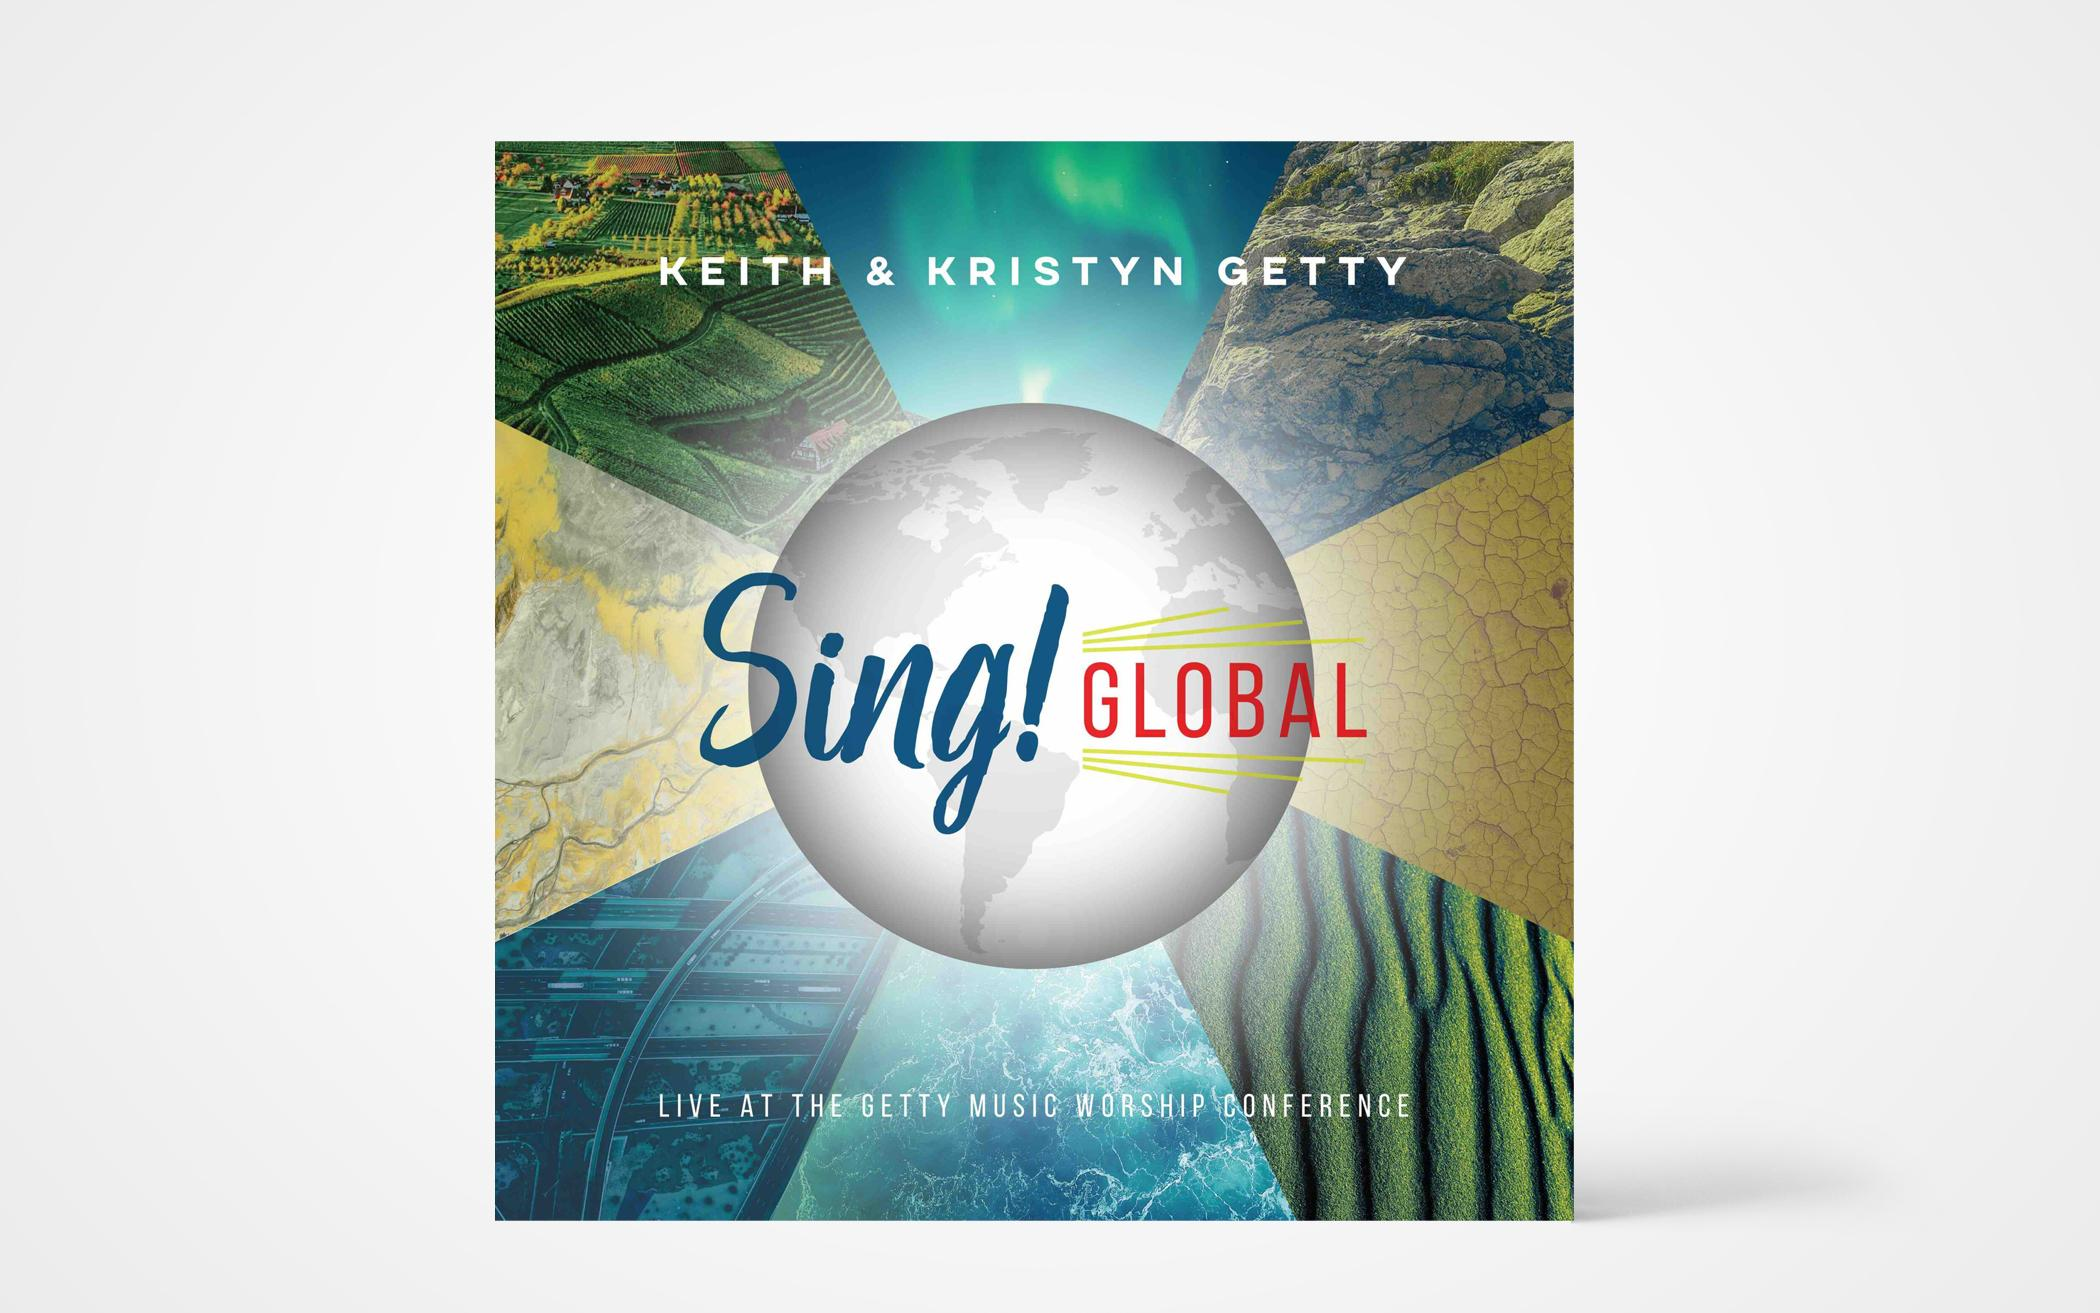 Sing! Global – Live at the Getty Music Worship Conference